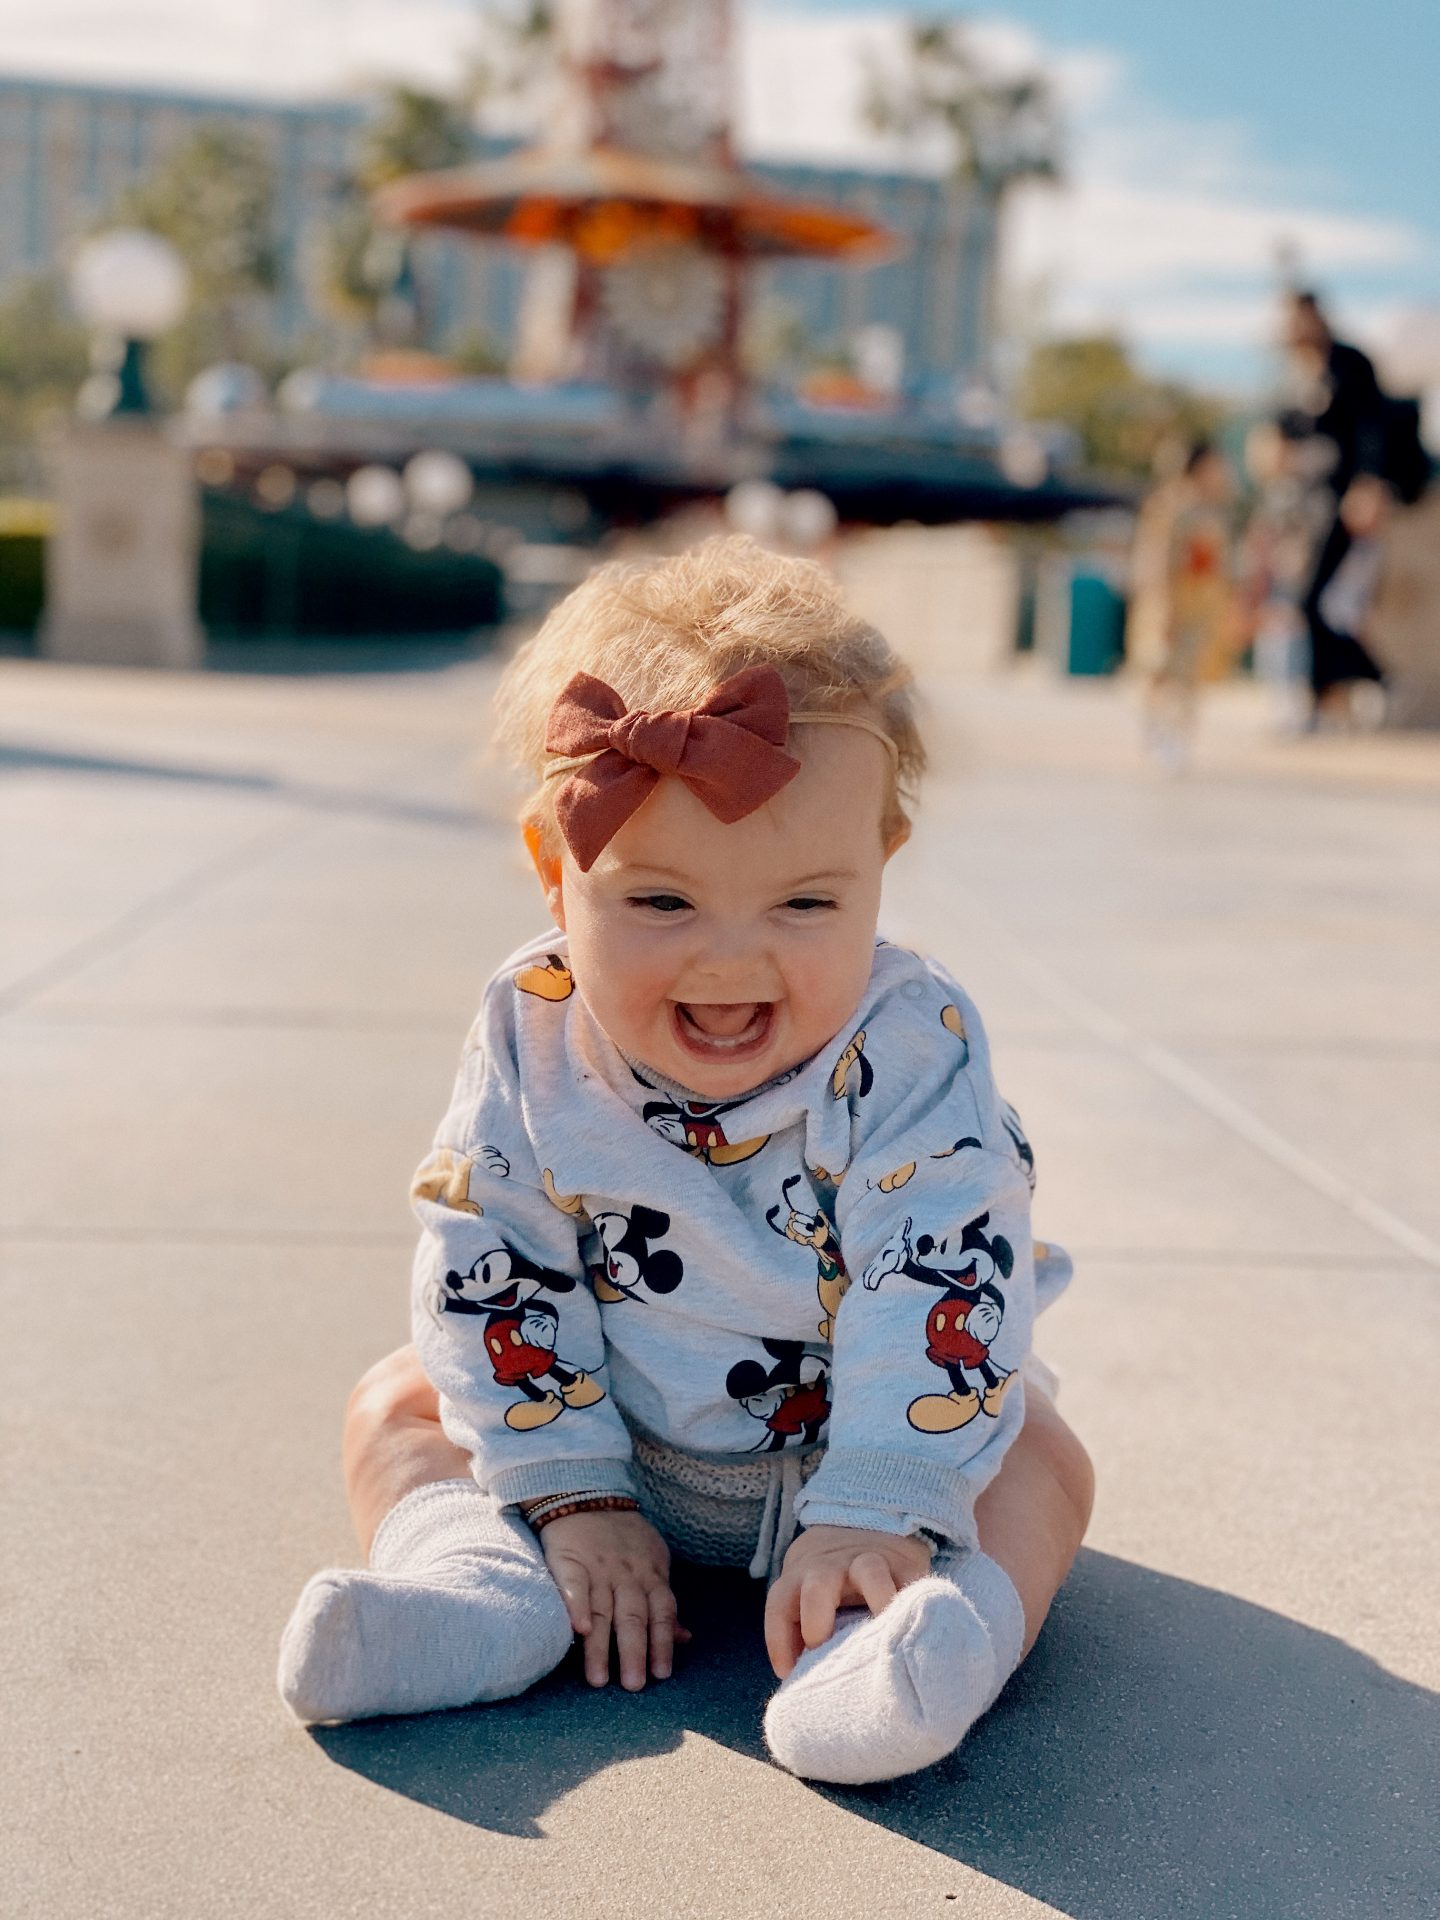 TOP 10 BEST DISNEYLAND TIPS FOR YOUR FAMILY featured by top San Diego blog, Navy Grace | Disneyland Tips by popular San Diego lifestyle blog, Navy Grace: image of a little girl sitting on the ground at Disneyland and wearing a Mickey Mouse shirt.